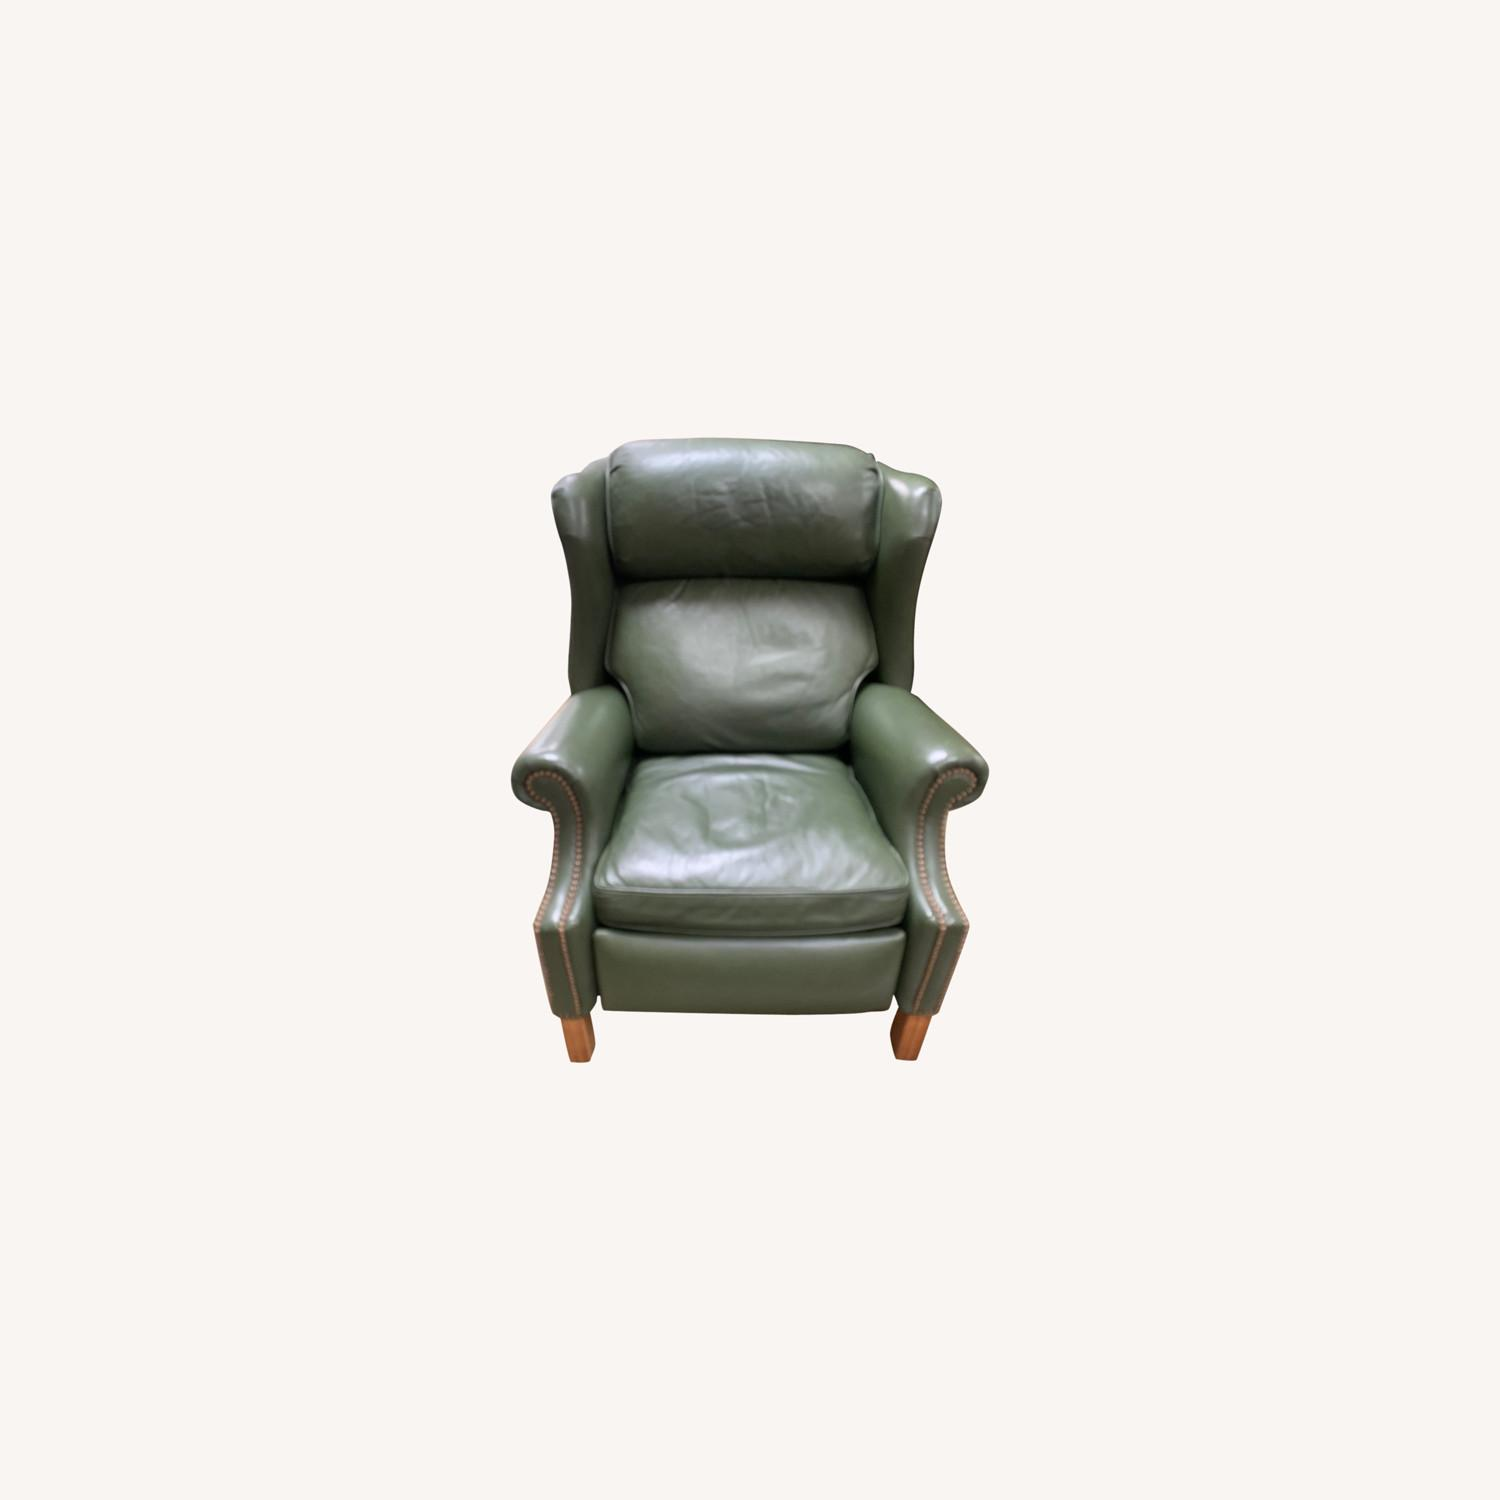 Ethan Allen Green Leather - image-0